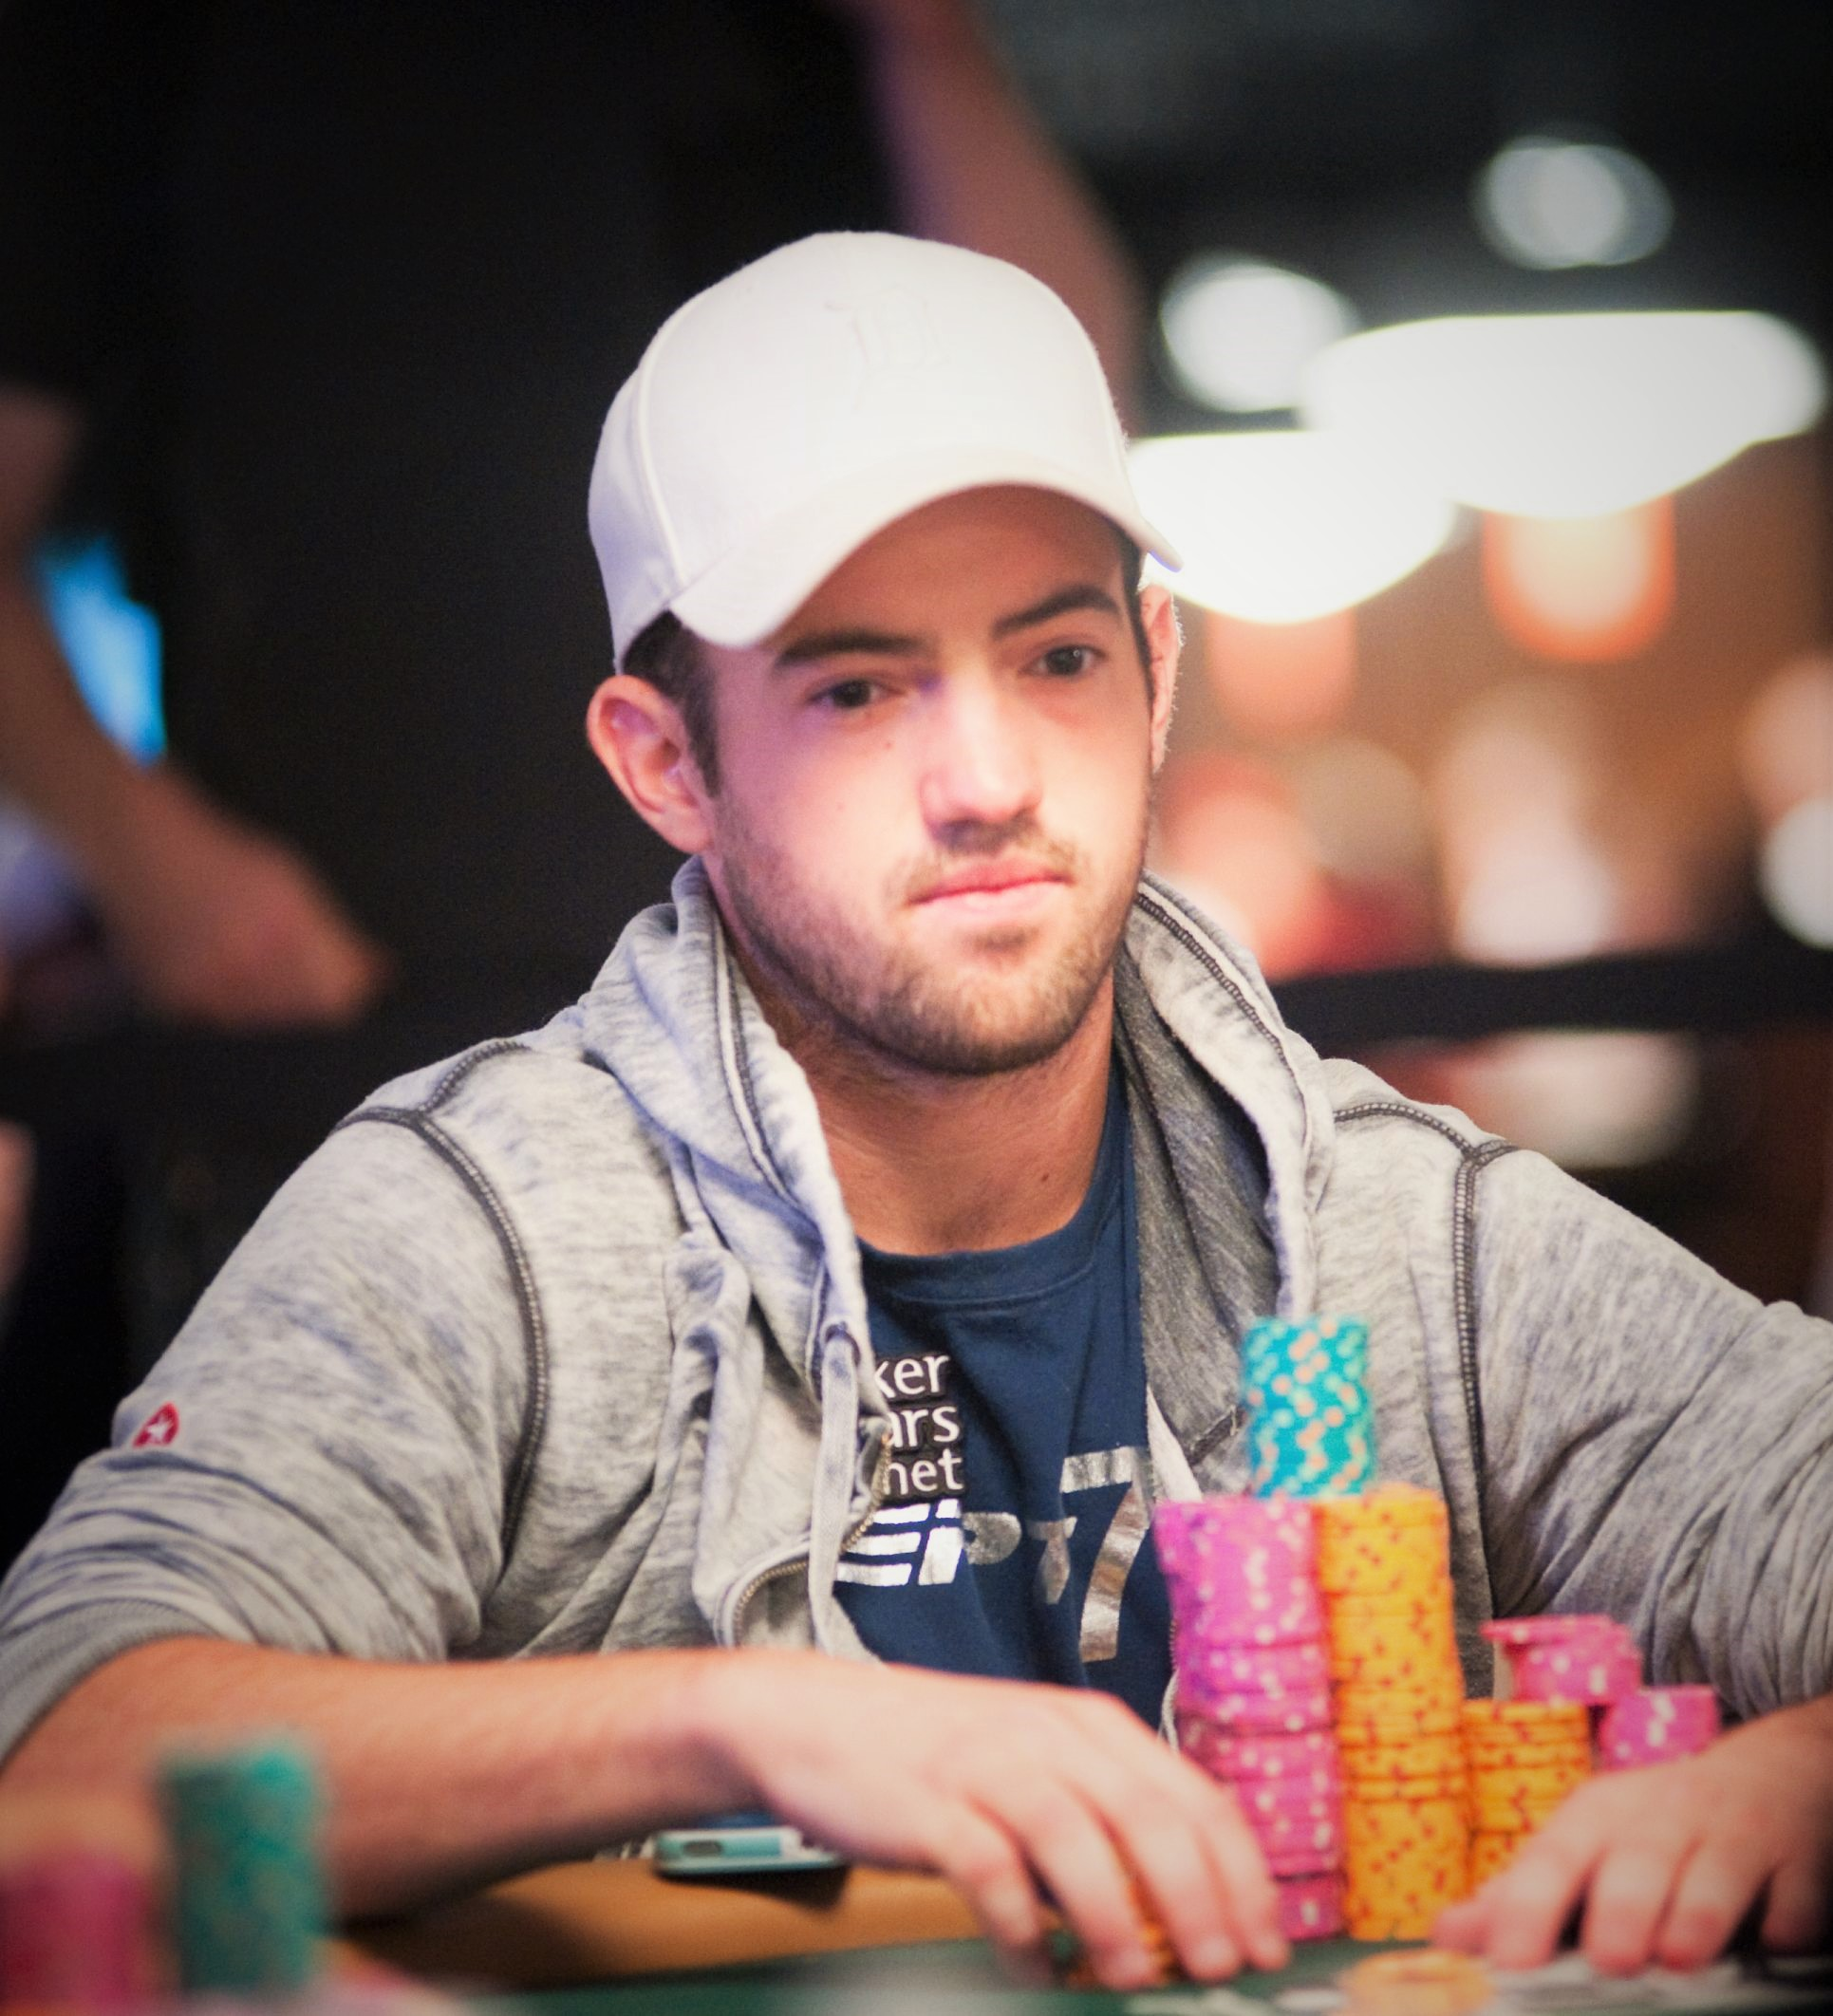 Looking forward to seeing WSOP Main Event winner Joe Cada as well. Great guy and great poker player!